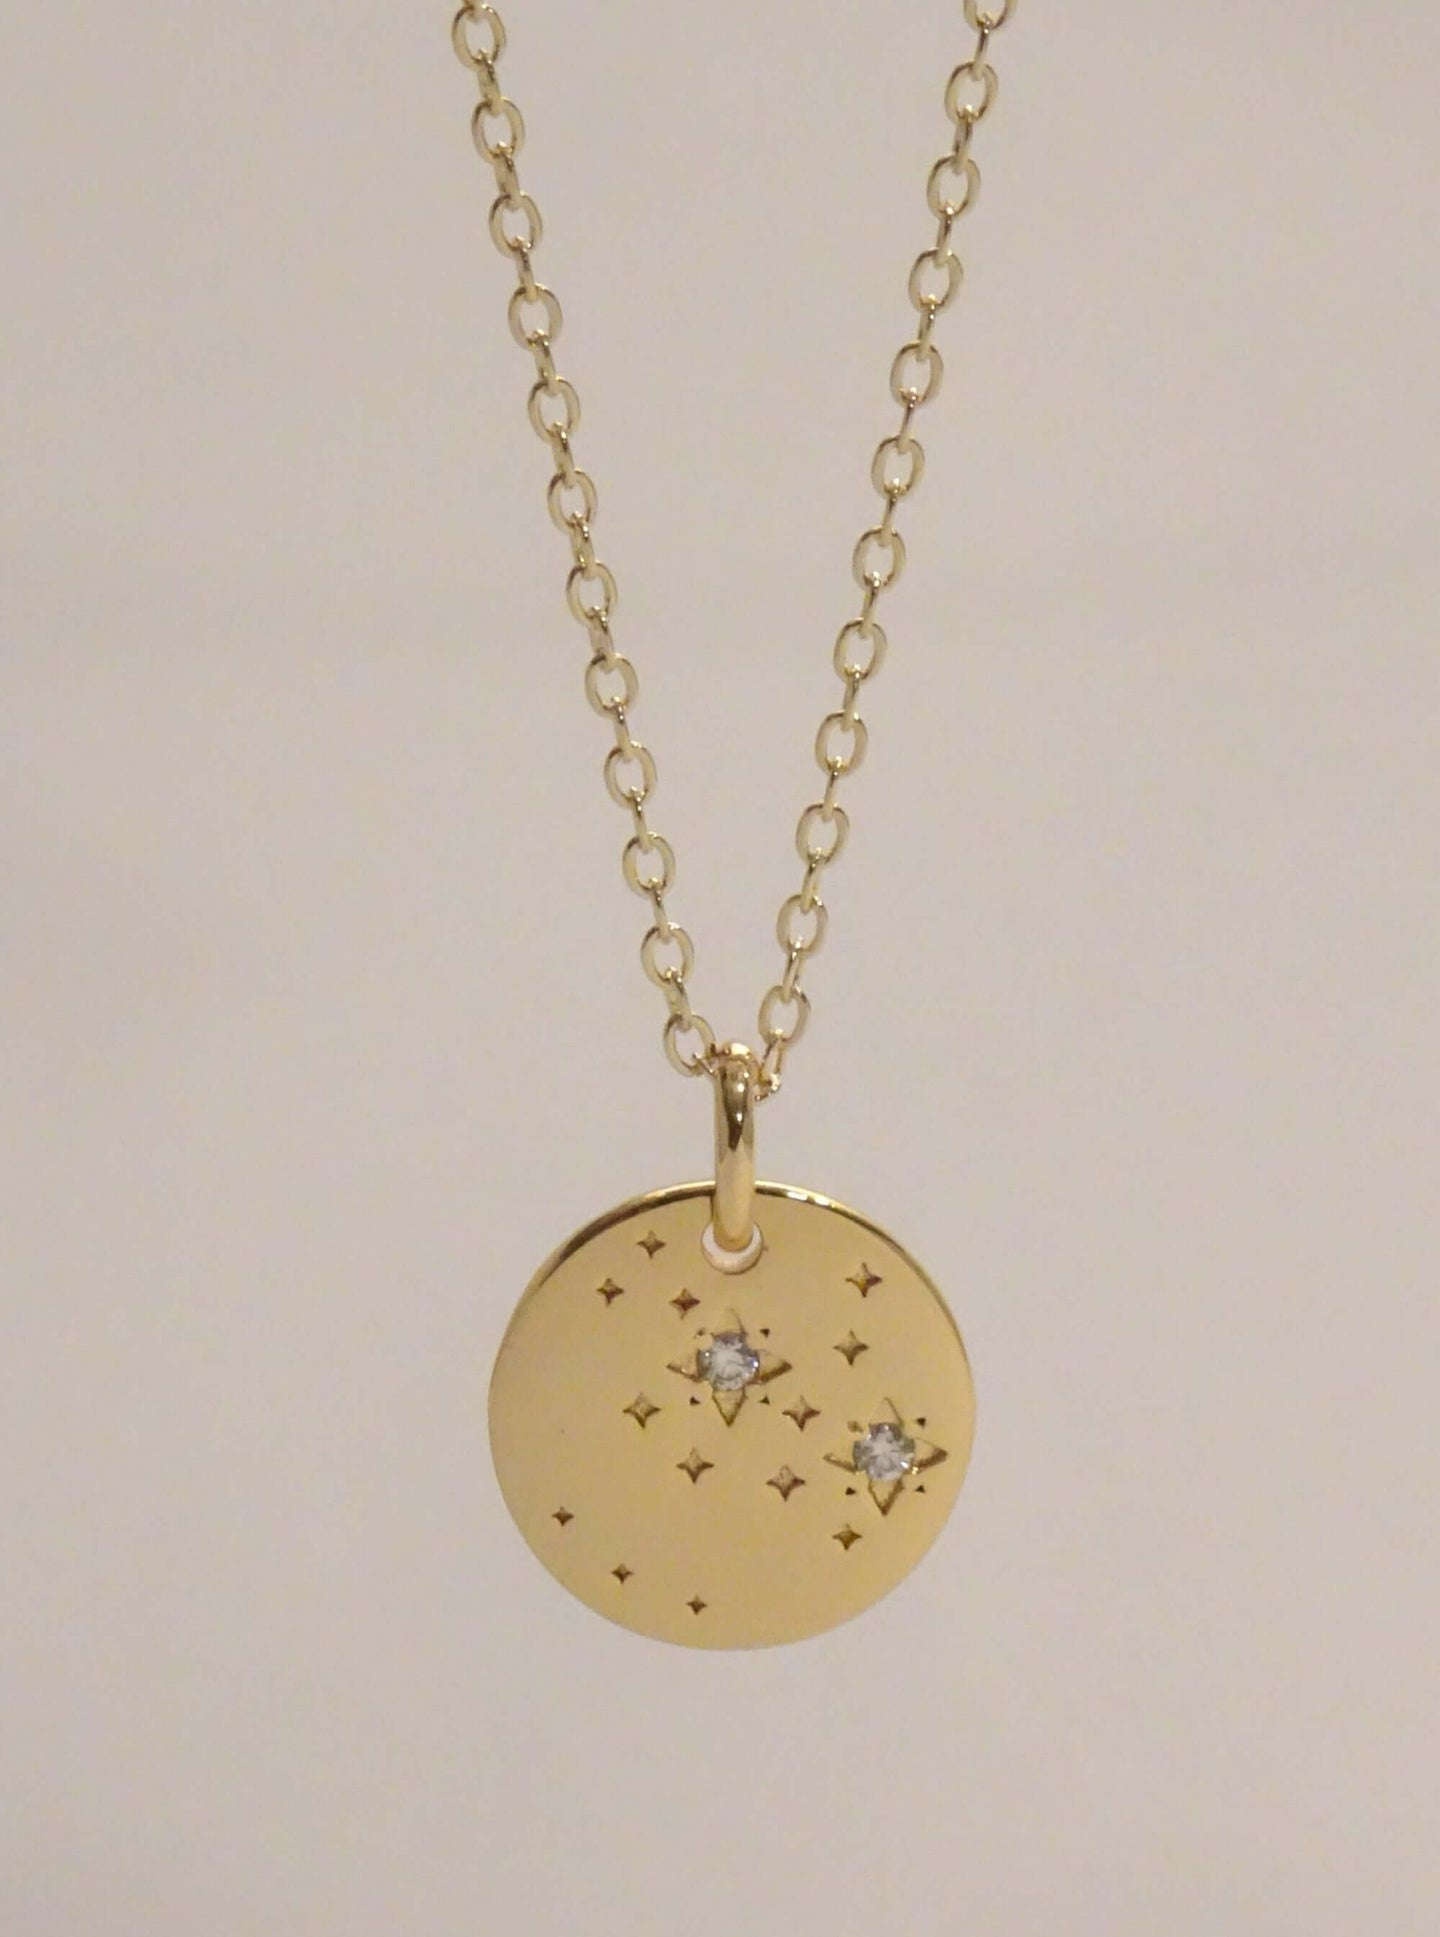 Sagittarius necklace, gold sagittarius necklace, sagittarius constellation necklace, mens sagittarius necklace, sagittarius necklace silver, Sagittarius zodiac sign necklace, sagittarius jewelry, zodiac constellation necklace